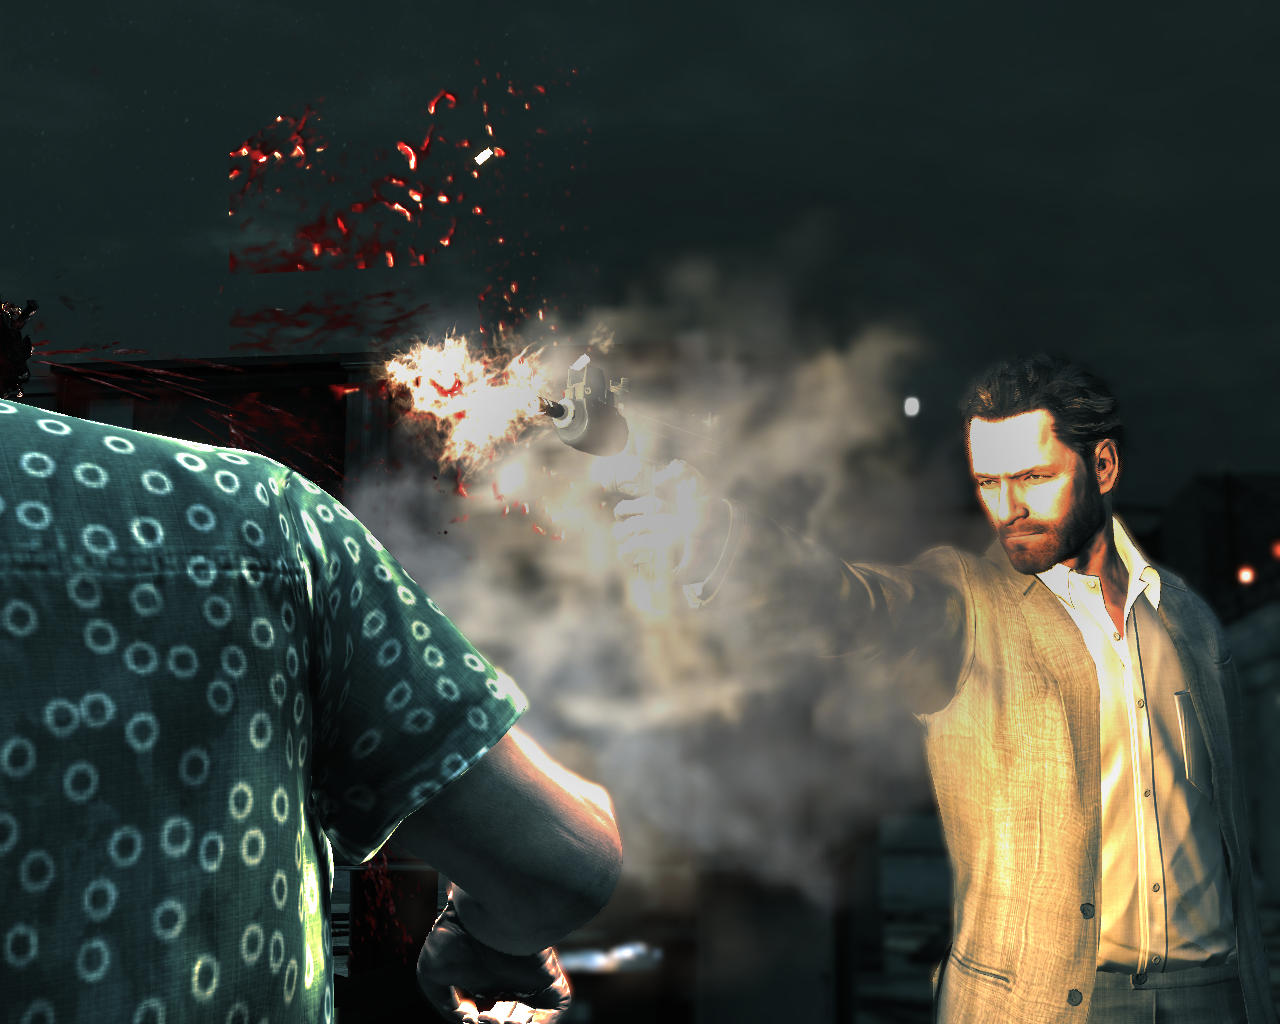 Max Payne 3 Windows If you engage in very close-quarter fight (melee distance), a cutscene will trigger